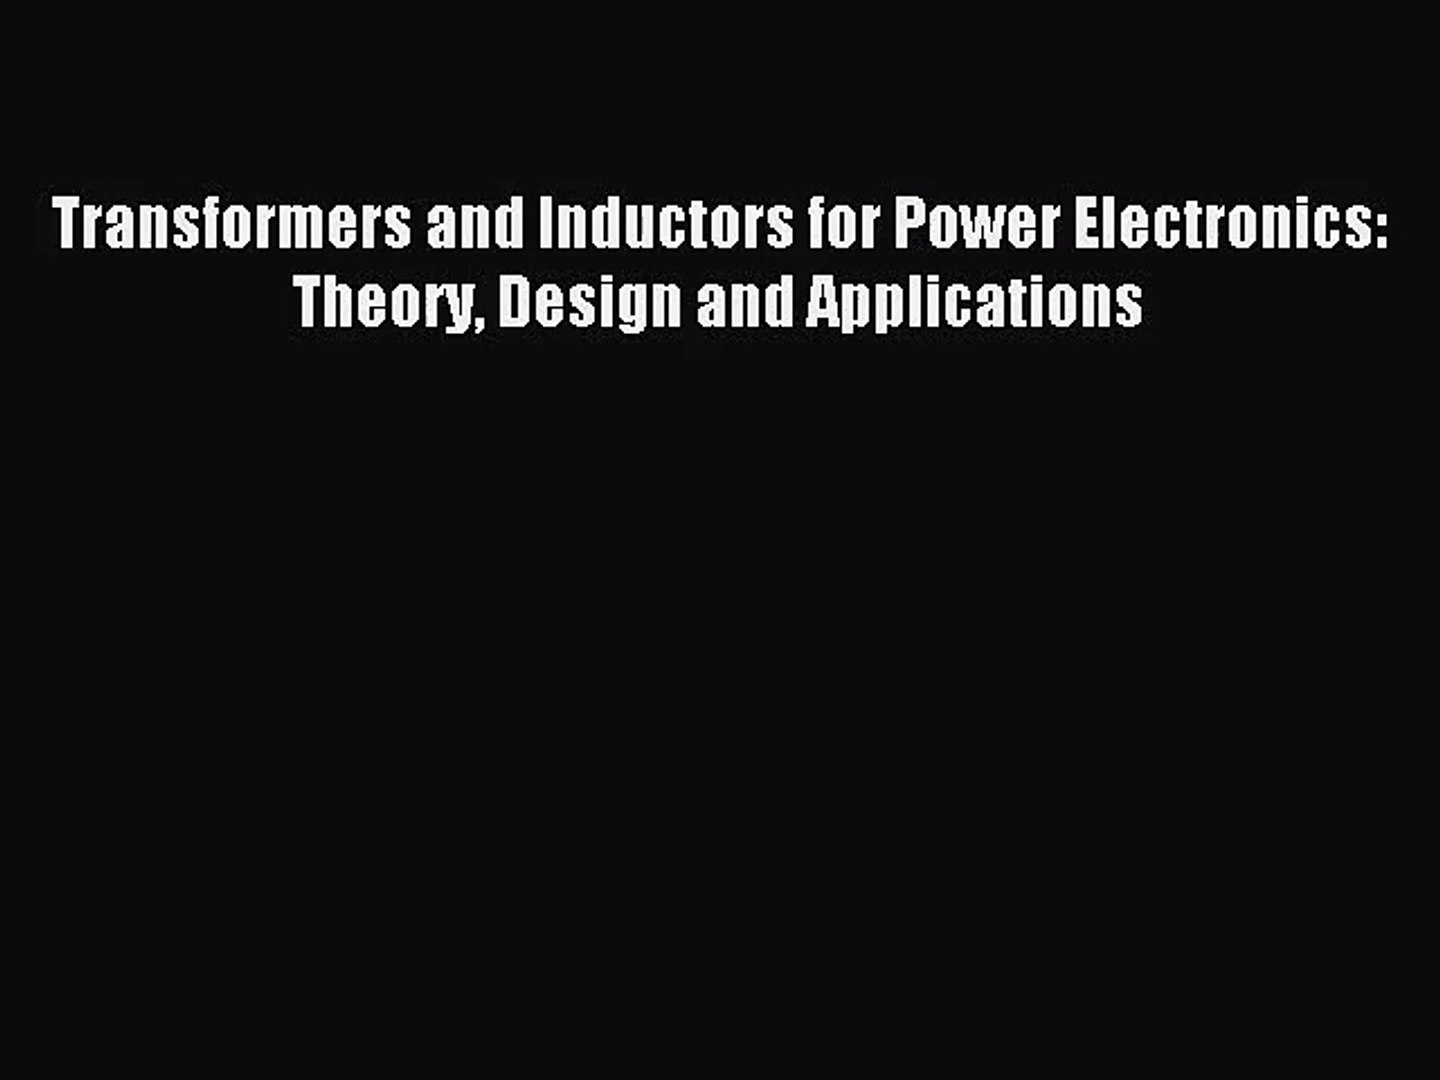 Theory, Design and Applications